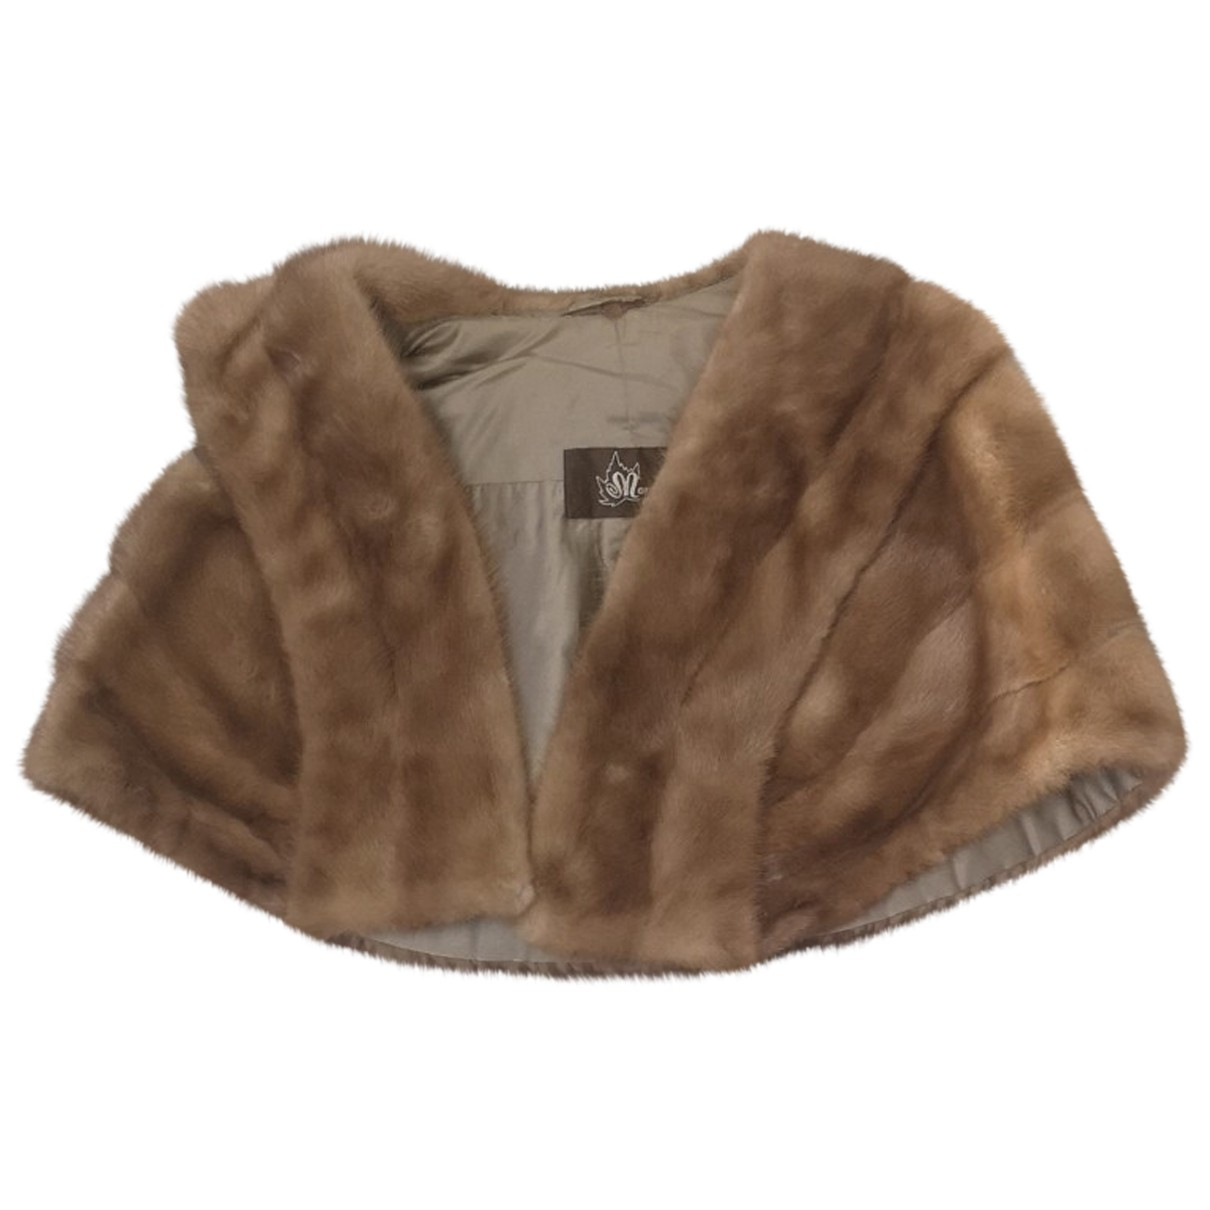 Non Signé / Unsigned N Gold Mink jacket for Women One Size International